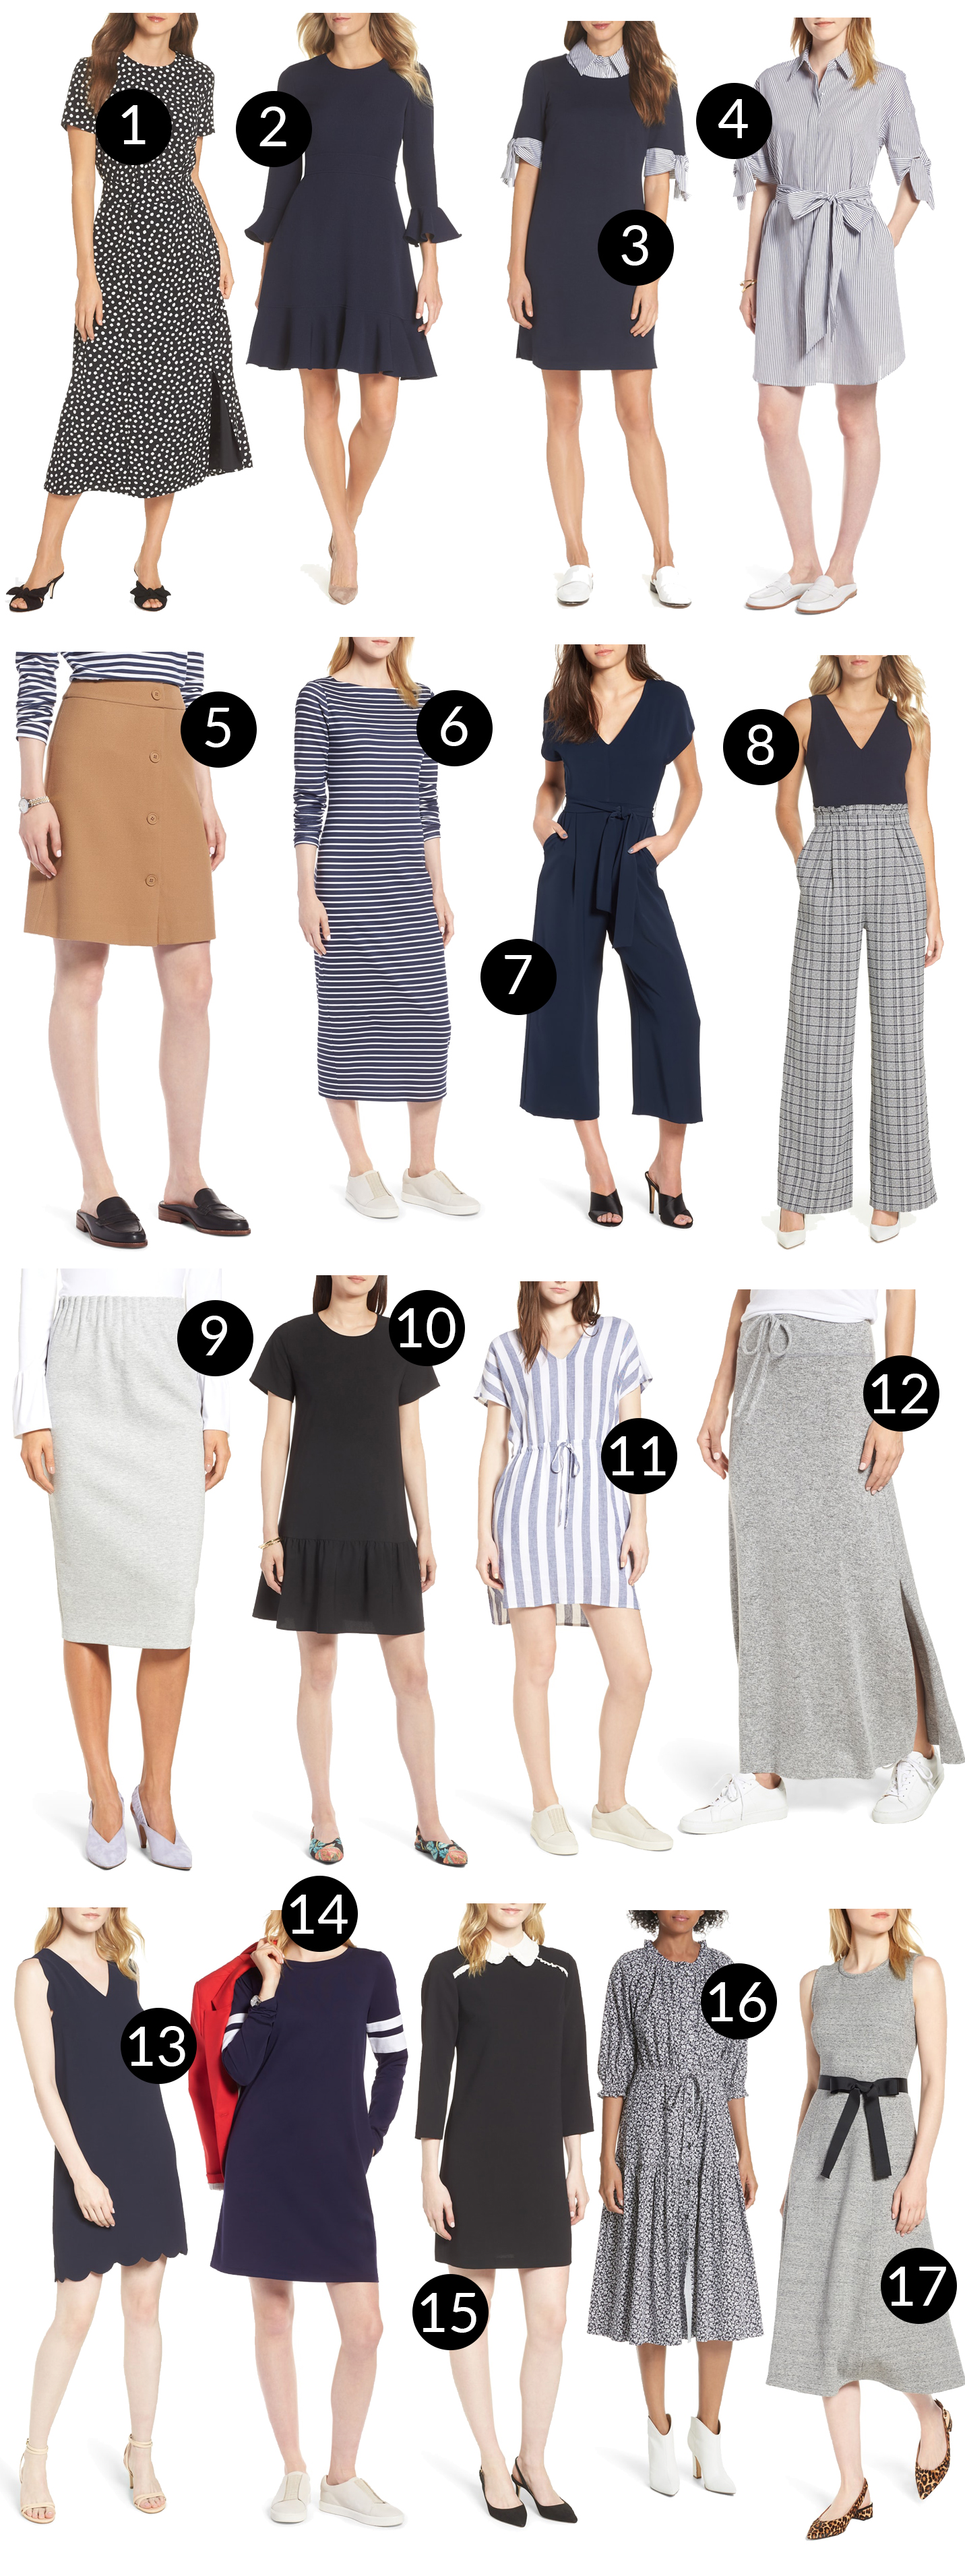 LIVE: Nordstrom Anniversary Sale dresses and skirts